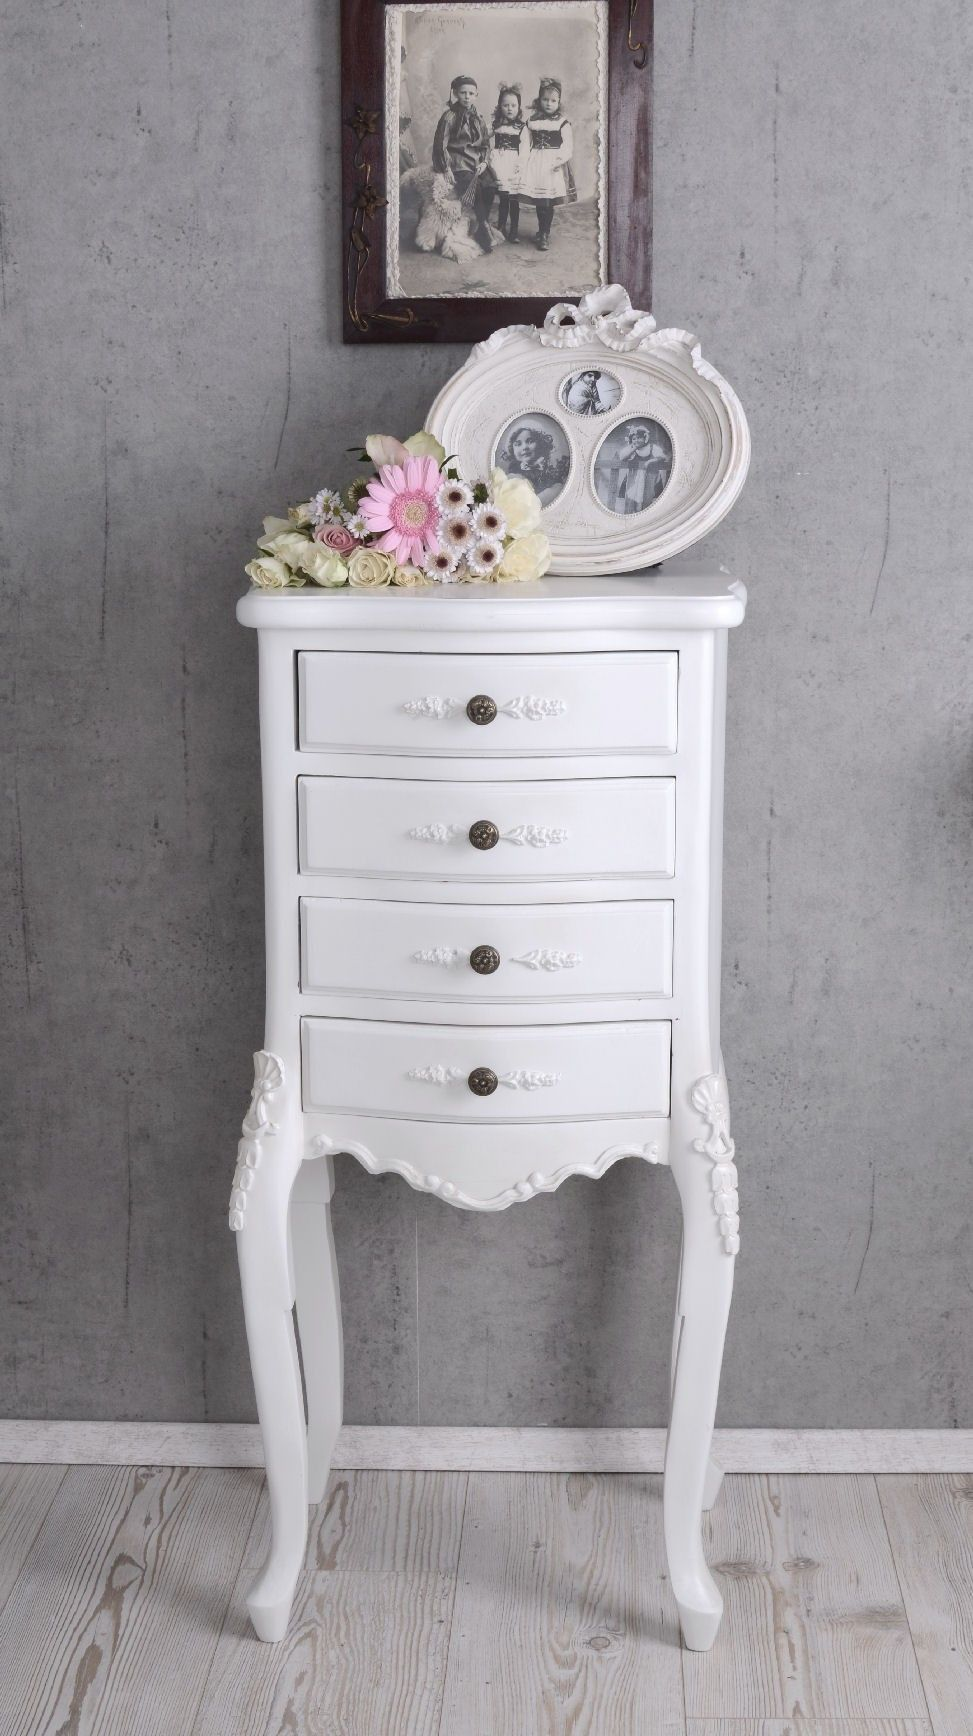 nostalgie kommode weiss schubladenschrank shabby chic. Black Bedroom Furniture Sets. Home Design Ideas